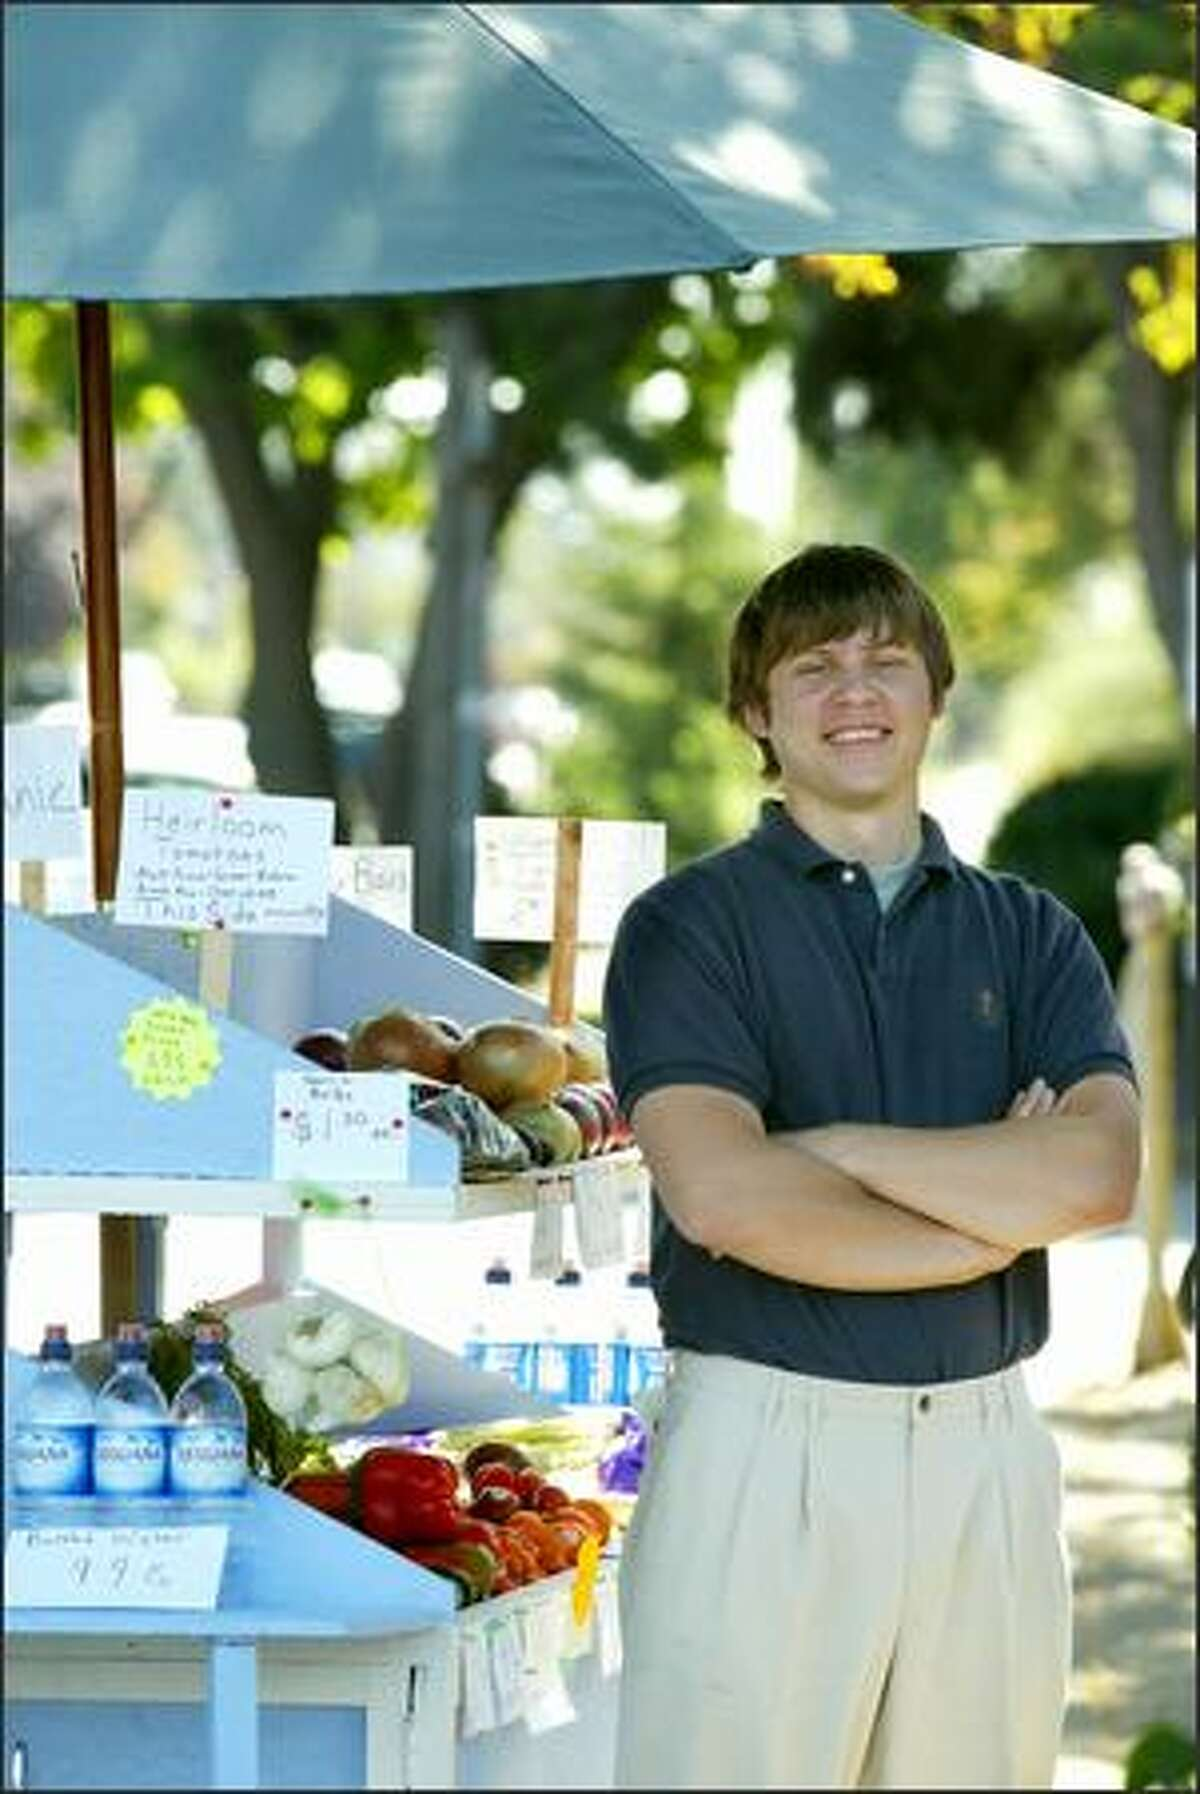 Erik Holsather, a senior business major at the University of Washington, operates a fruit and vegetable stand off Alki Beach in West Seattle.